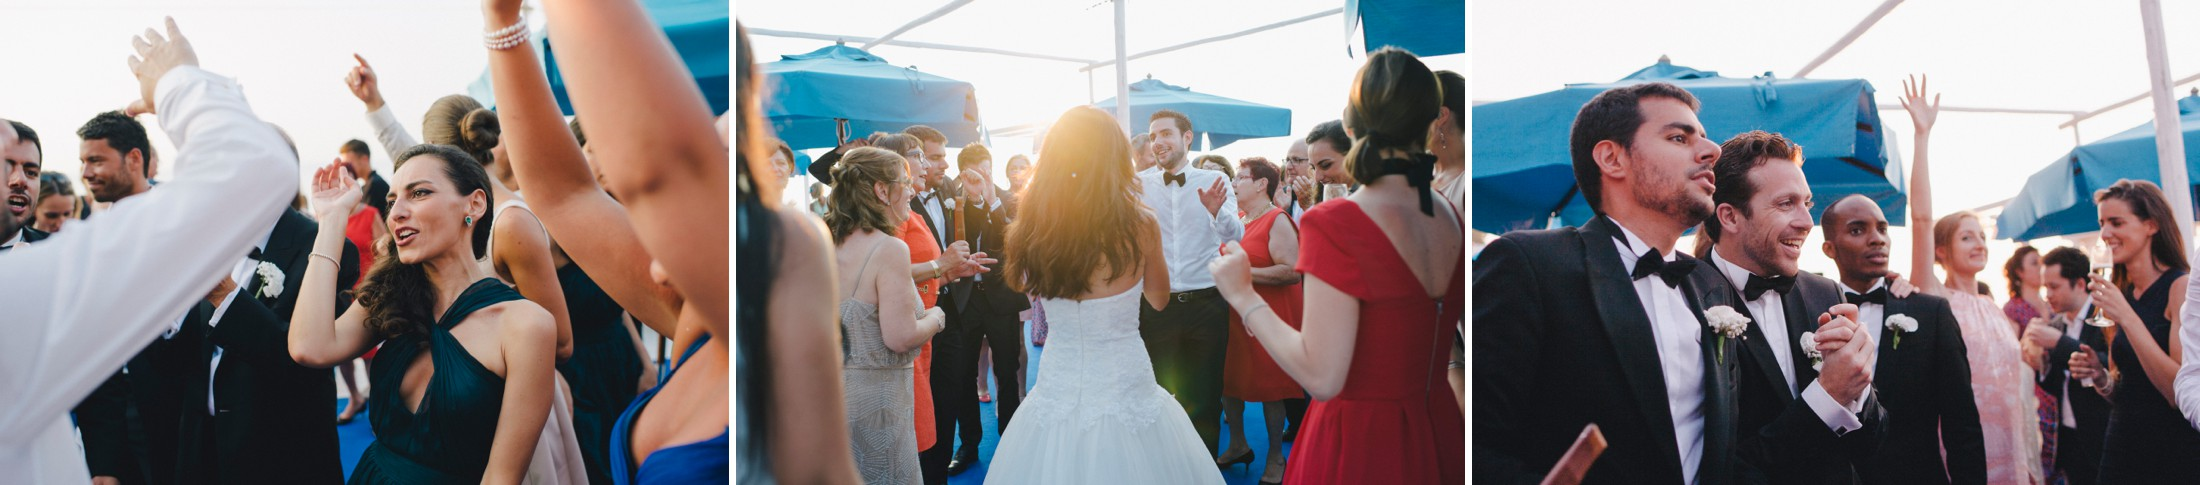 collage wedding guests dancing